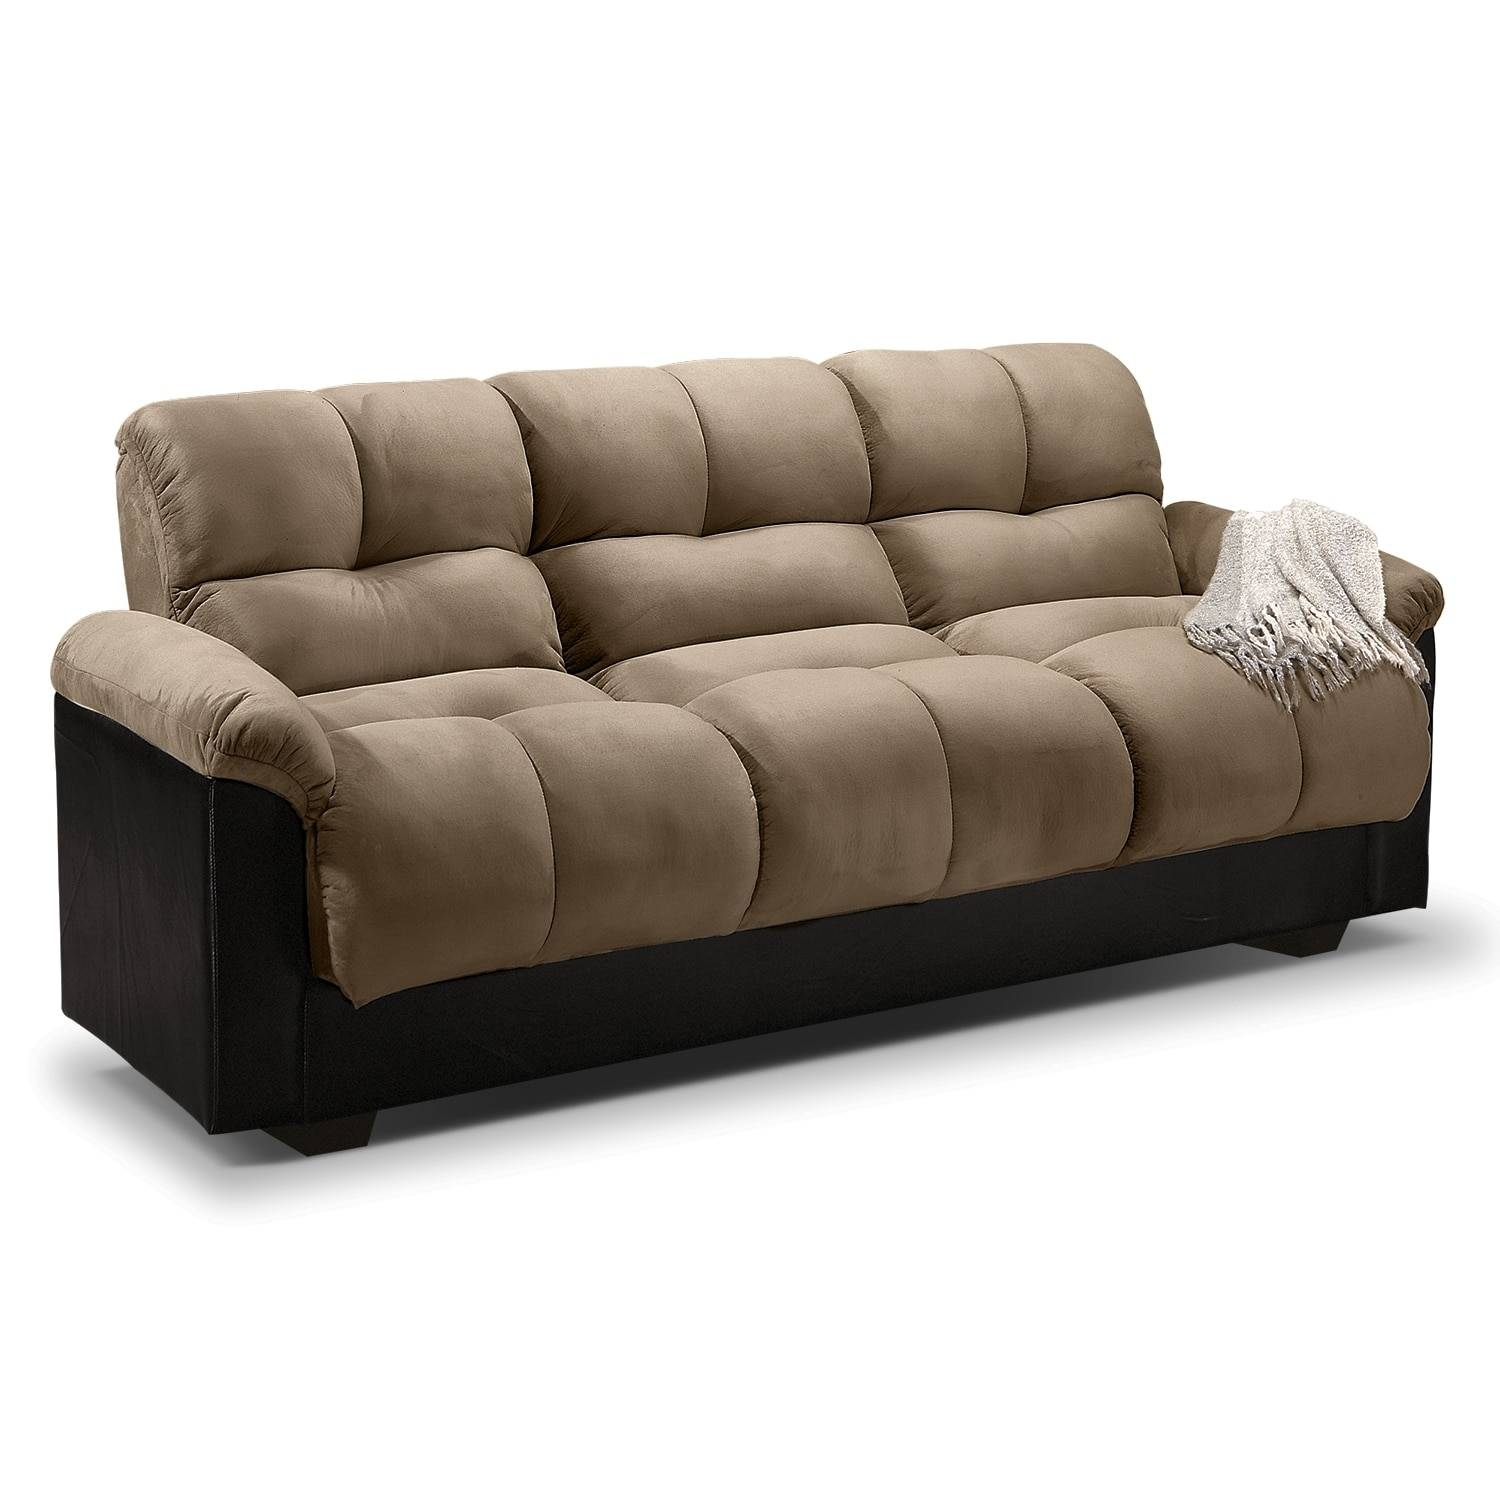 Top 30 of Storage Sofa Beds